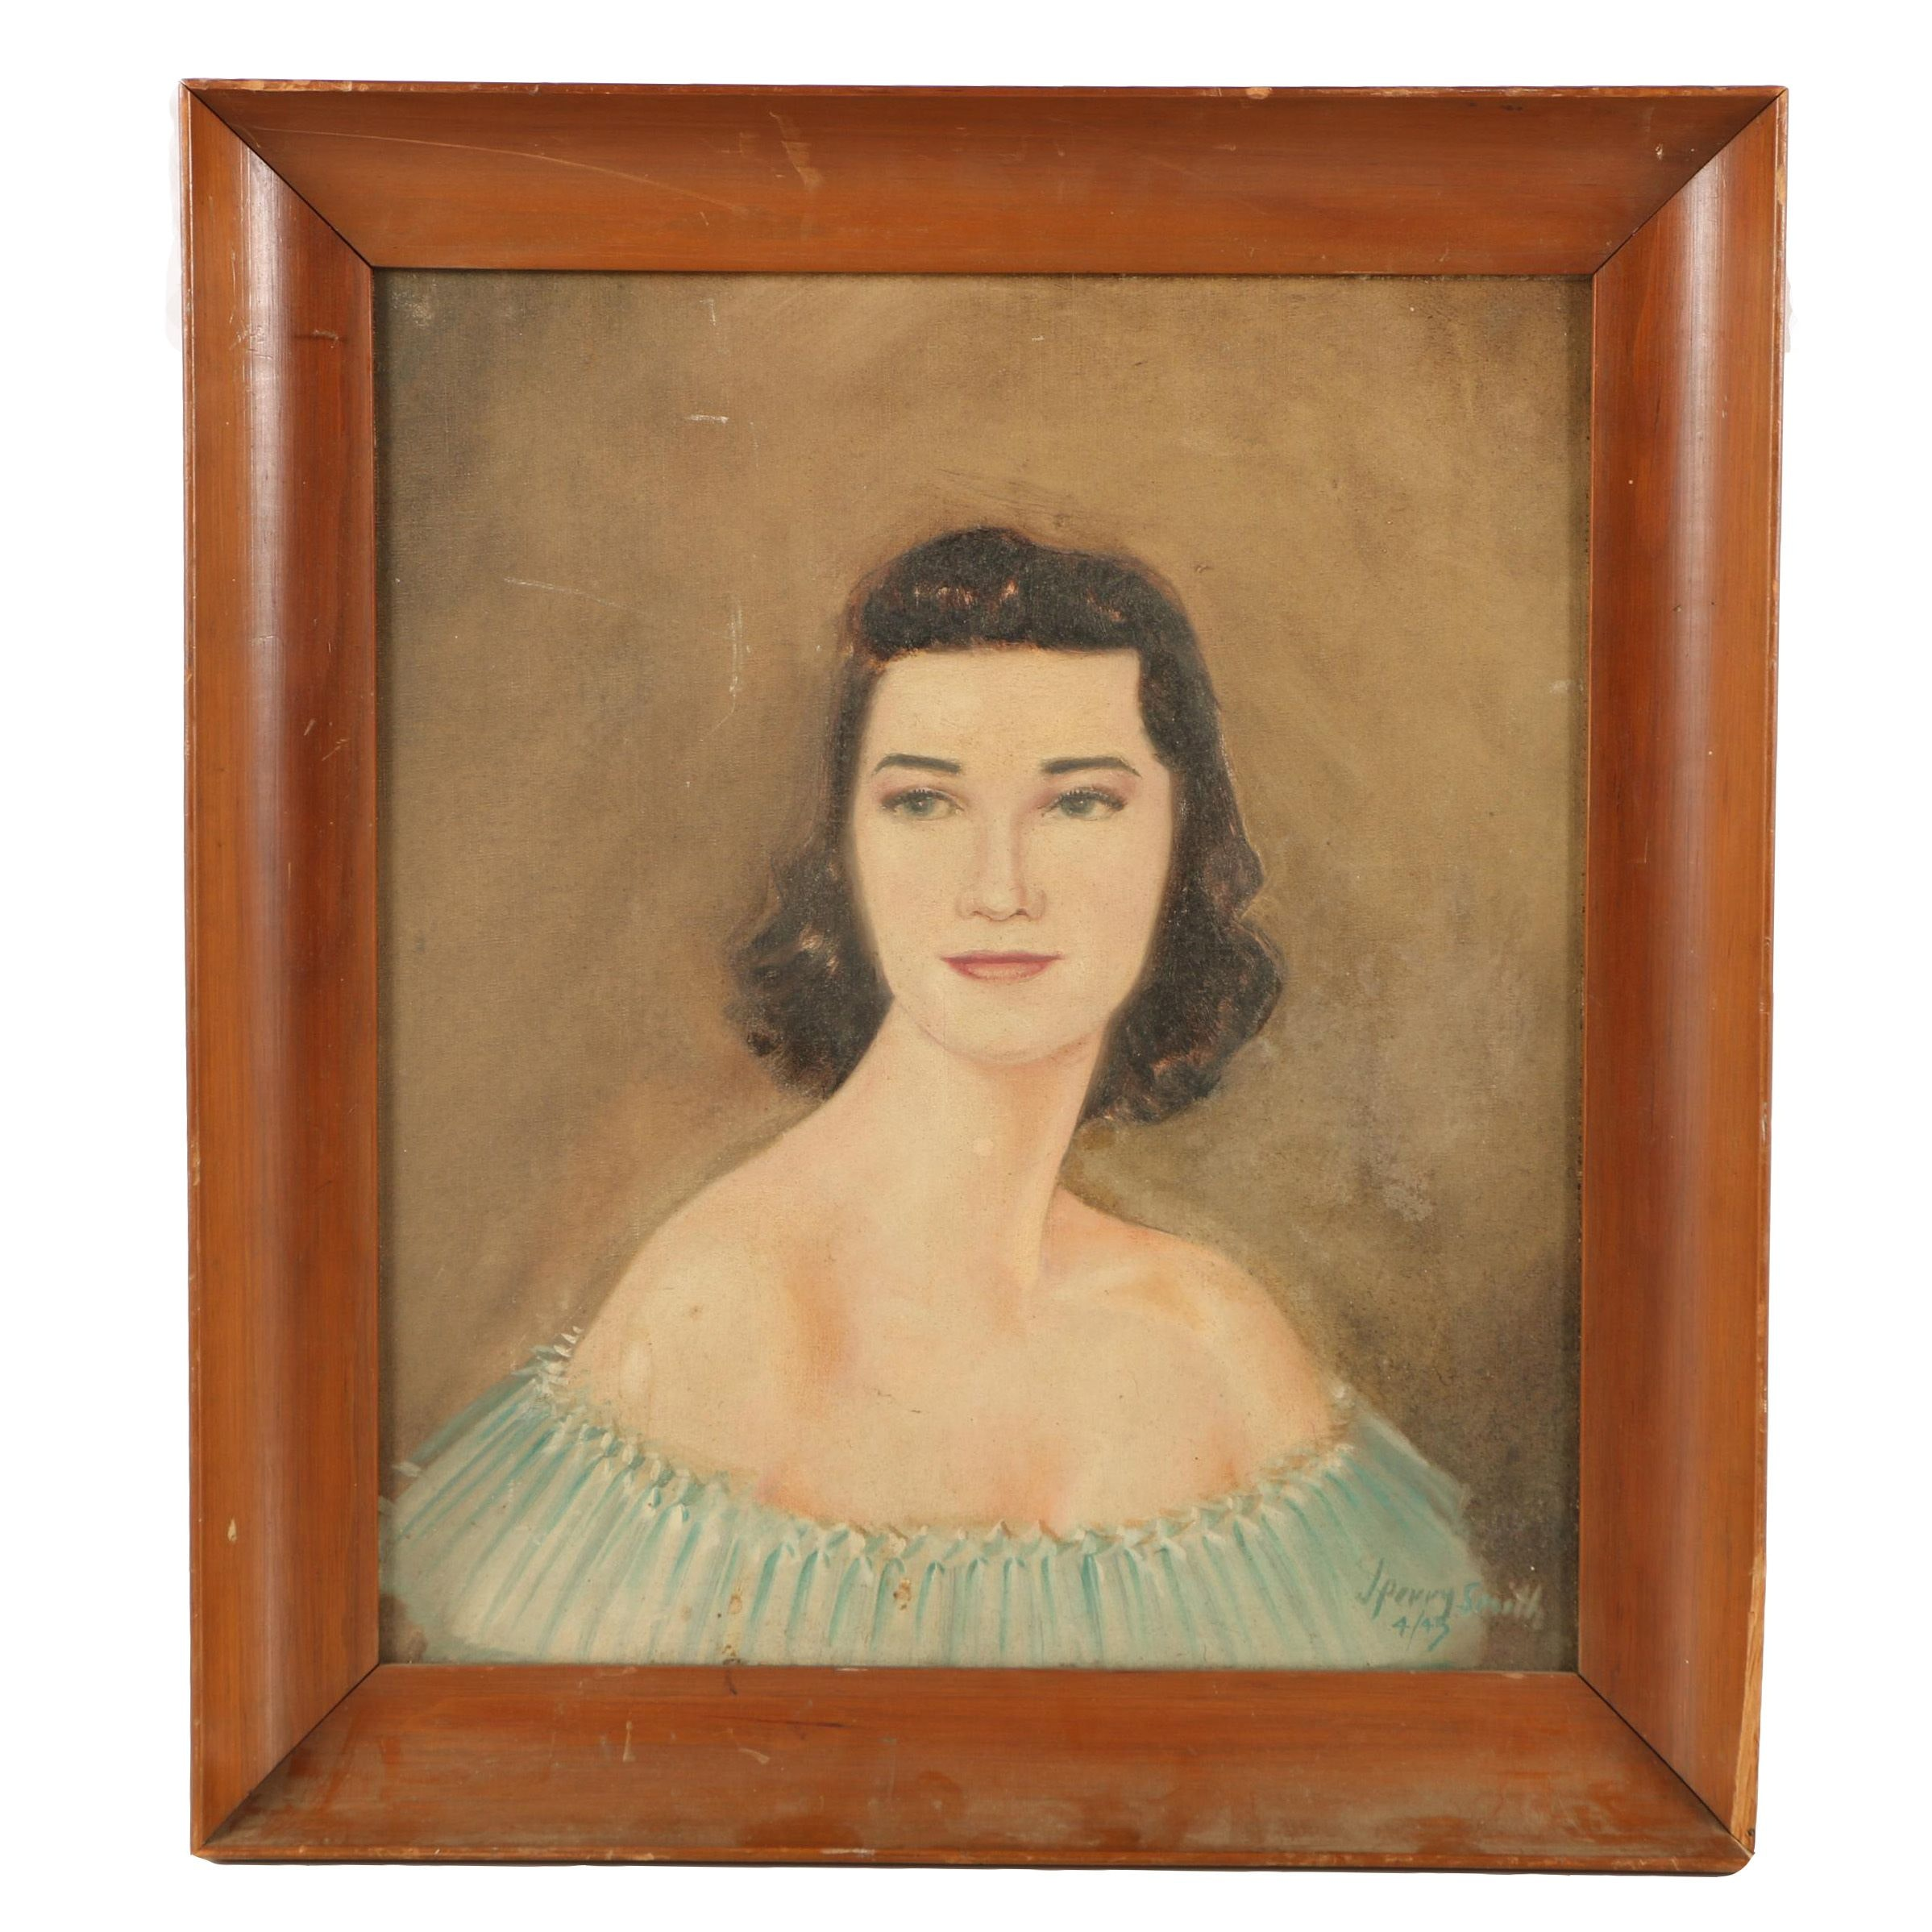 J. Perry Smith Oil Painting on Canvas Board of Woman in Pale Aqua Gown